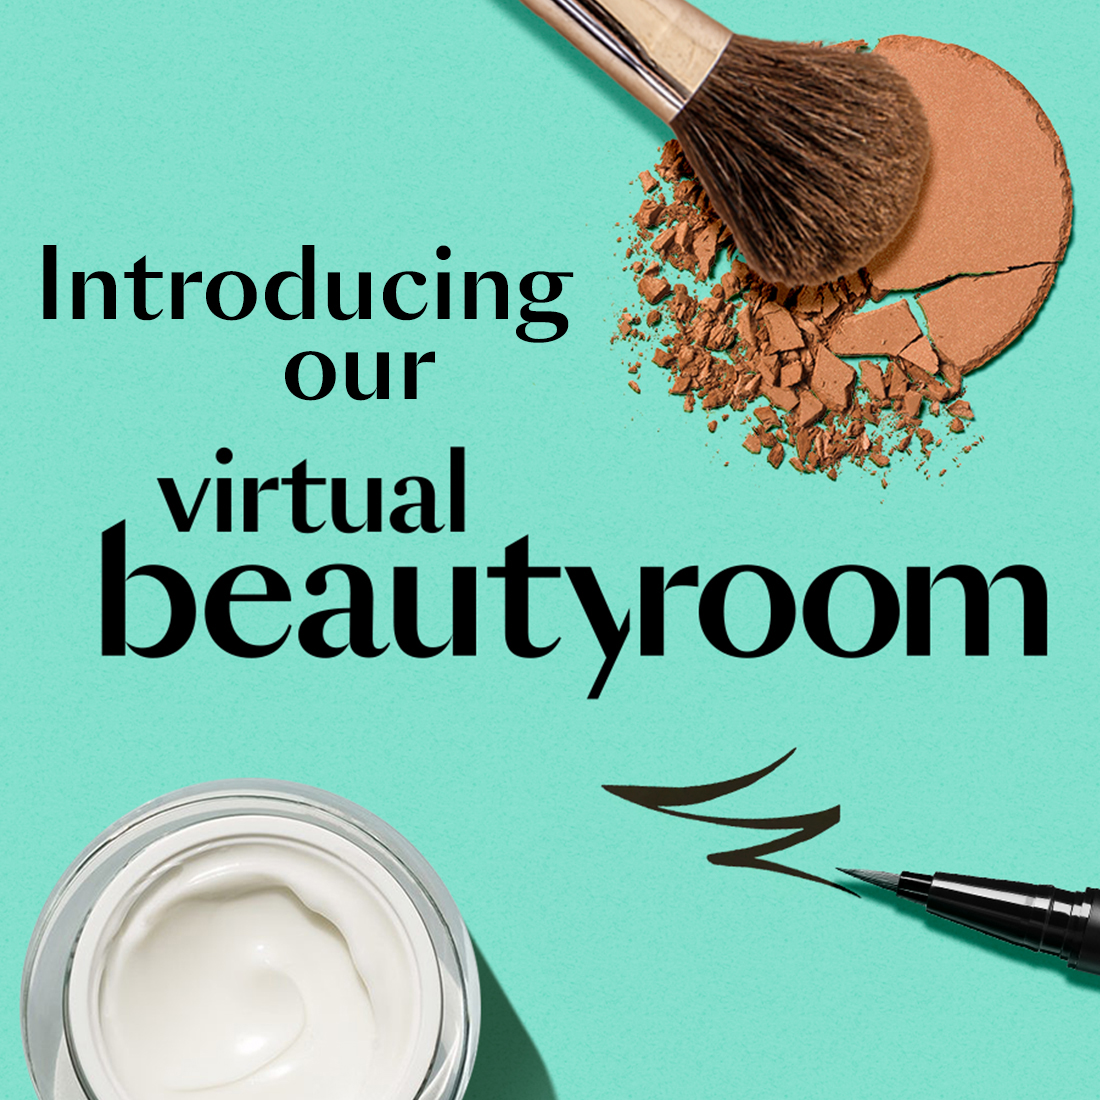 Visit the Virtual Beauty Room at Debenhams